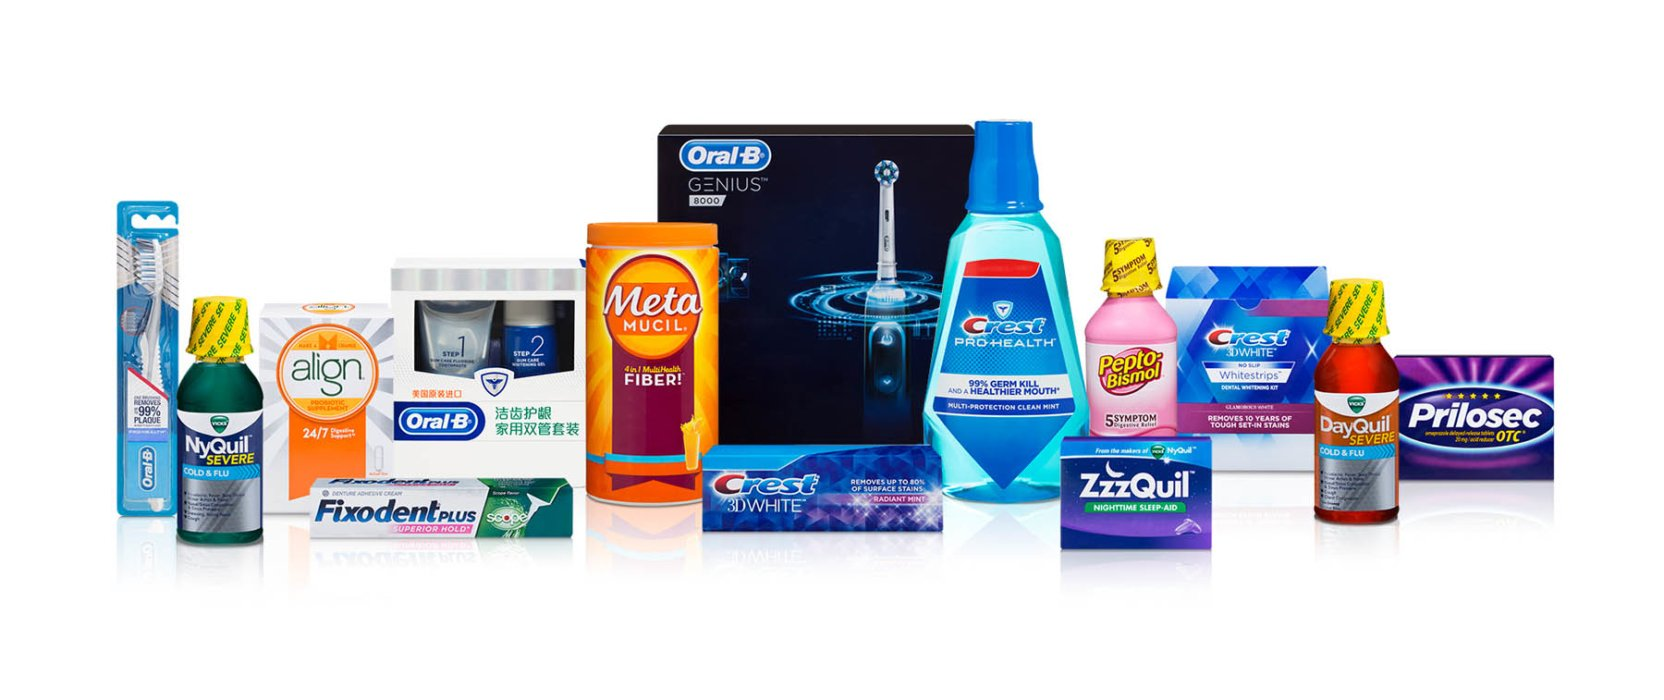 A family of P&G products around personal health